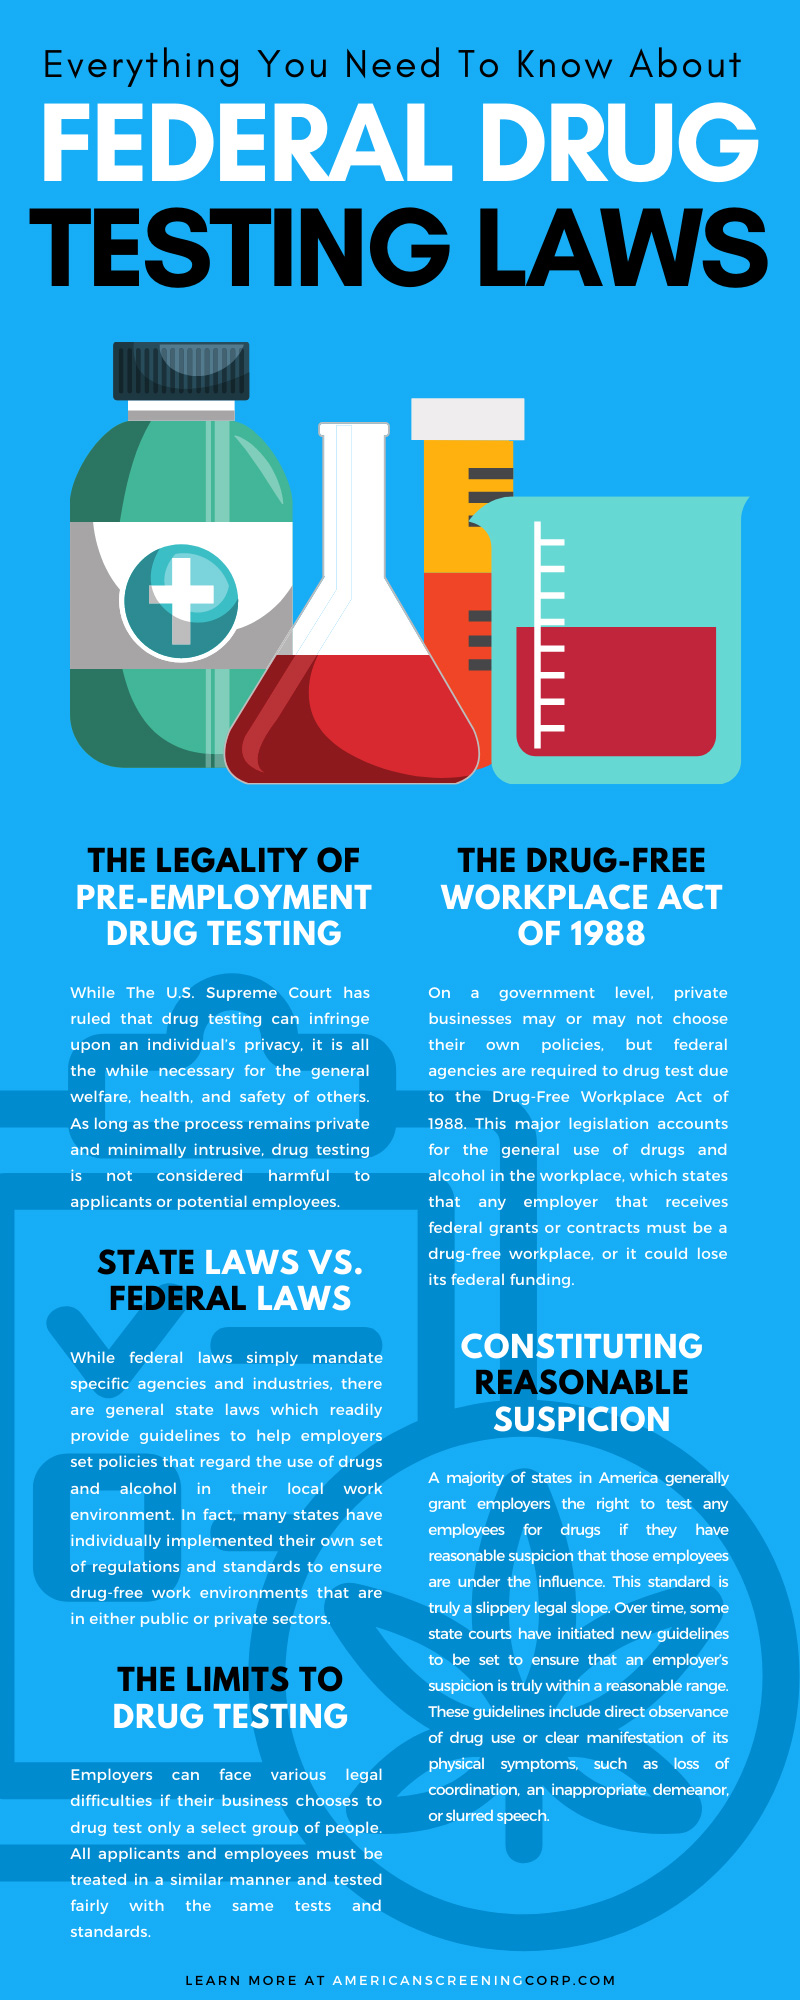 Everything You Need To Know About Federal Drug Testing Laws